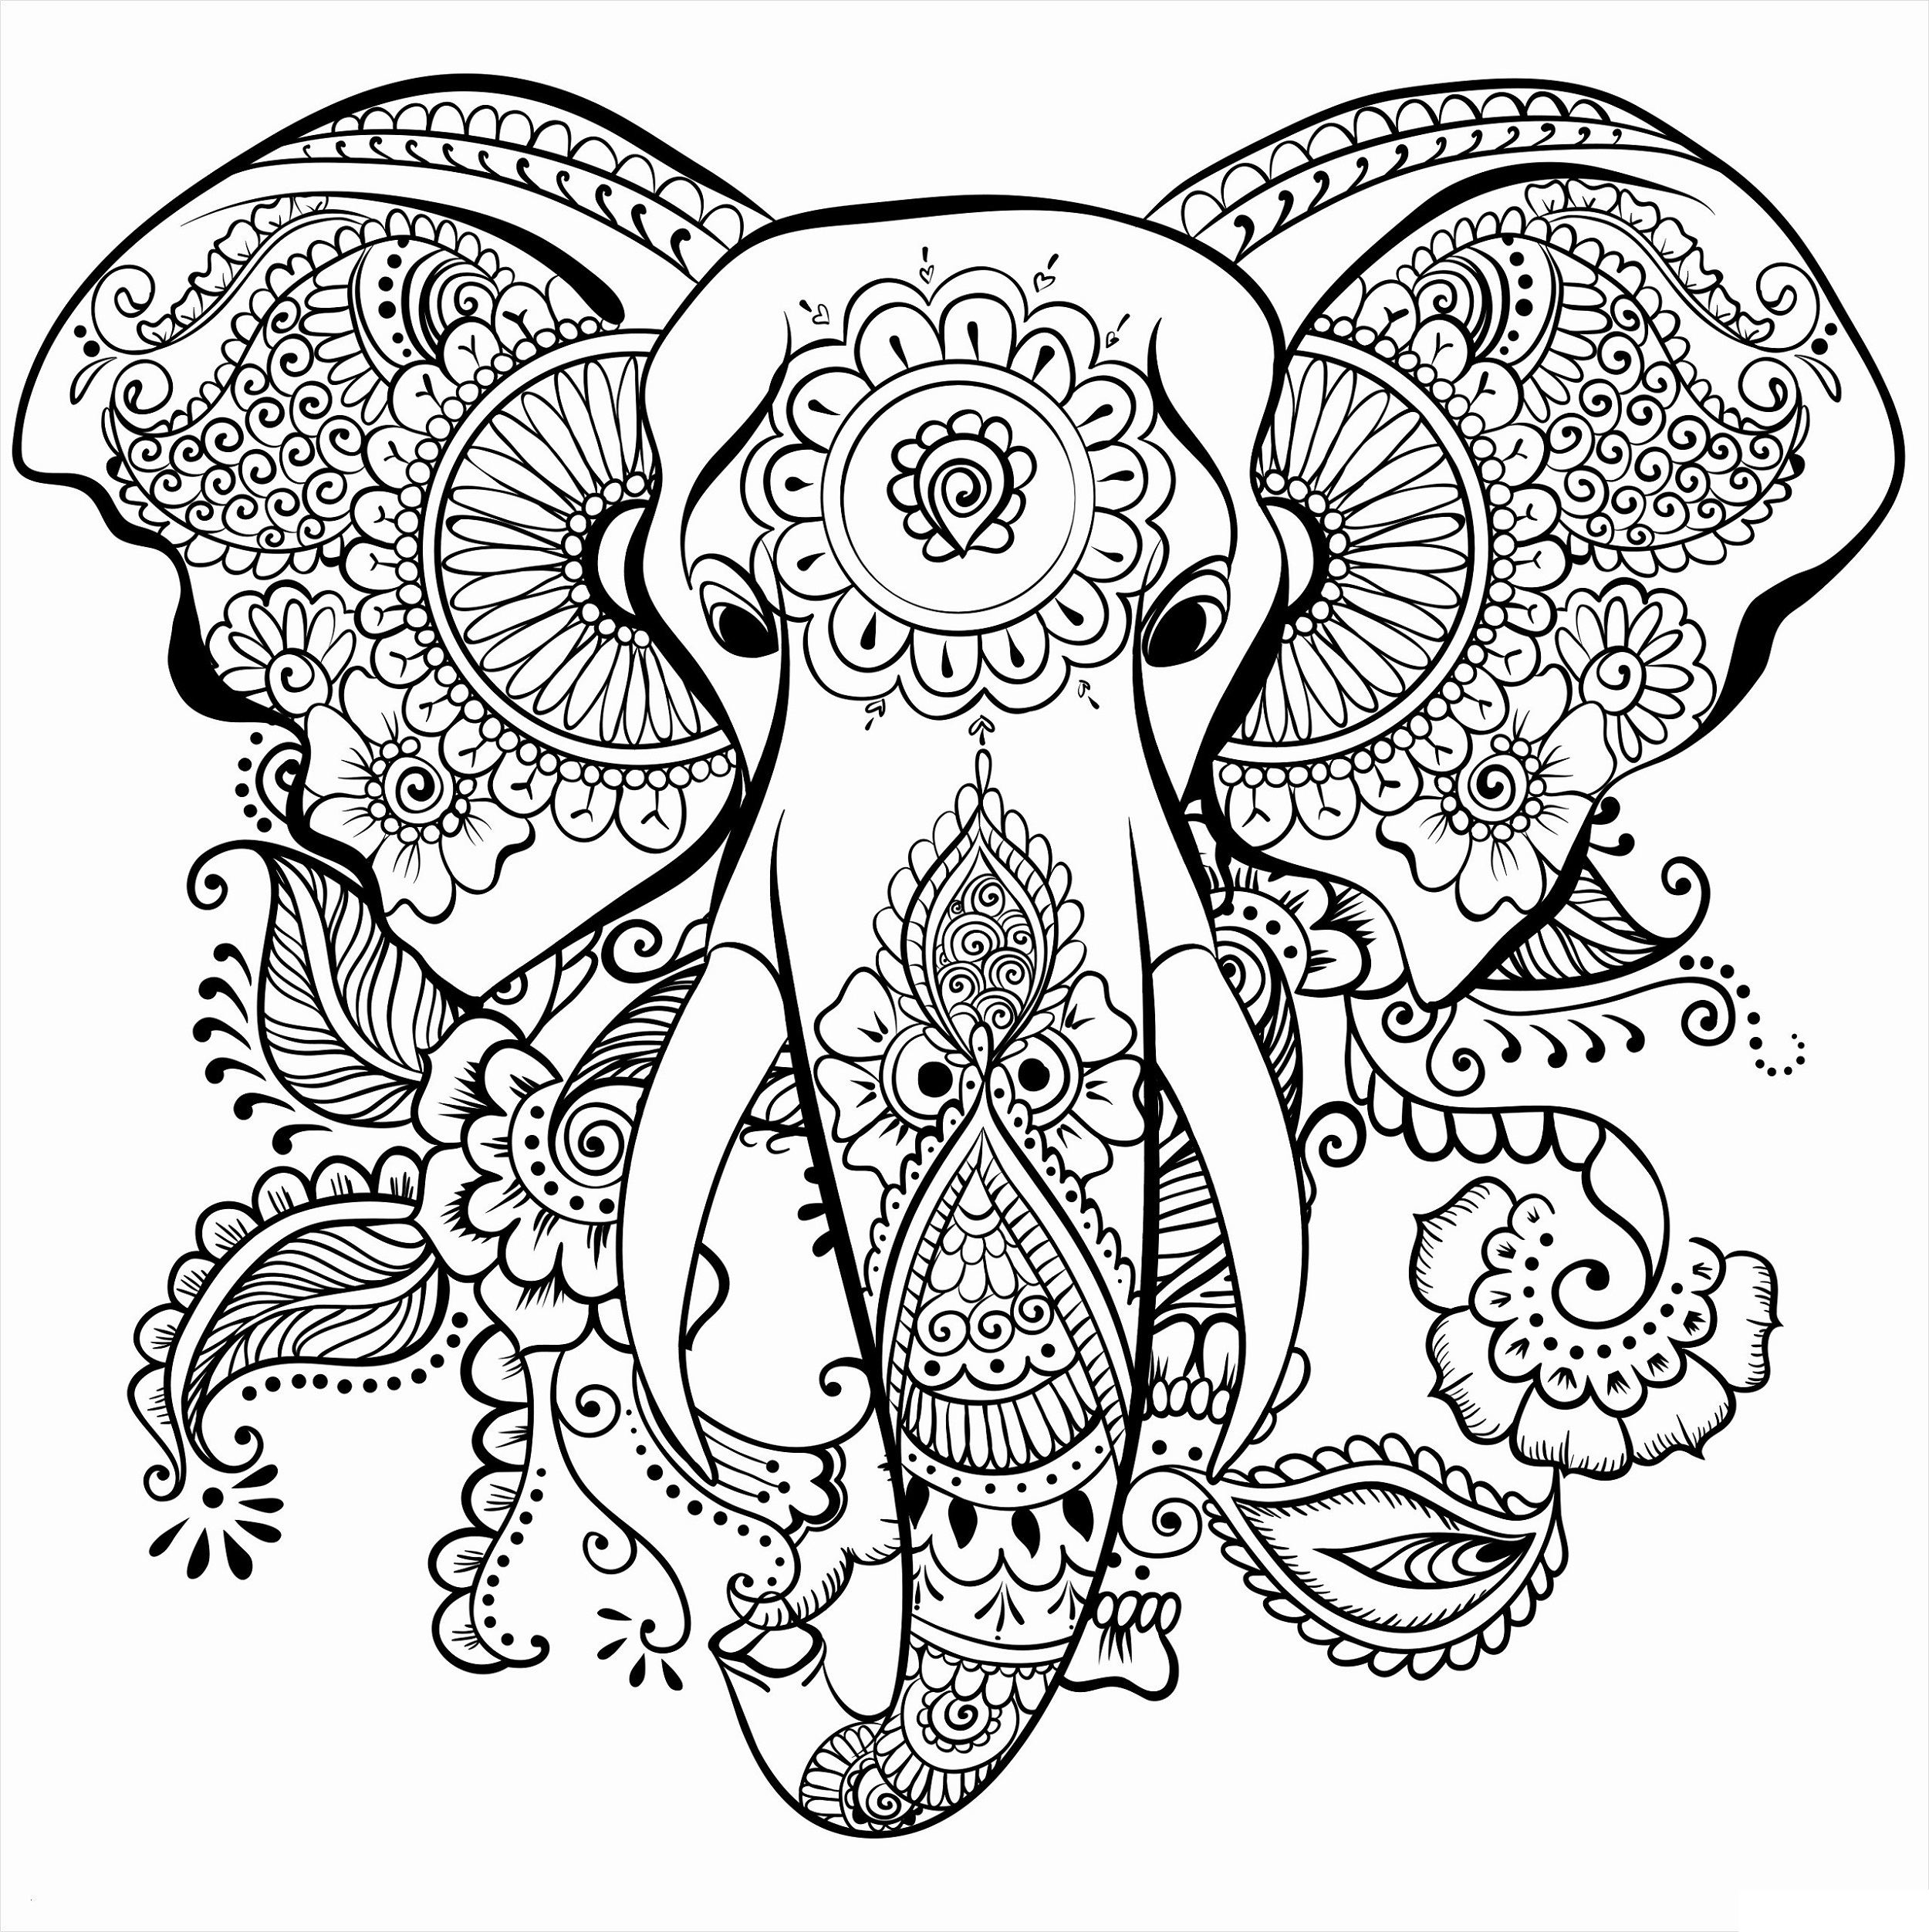 elephant coloring elephant and the baby elephant coloring elephant